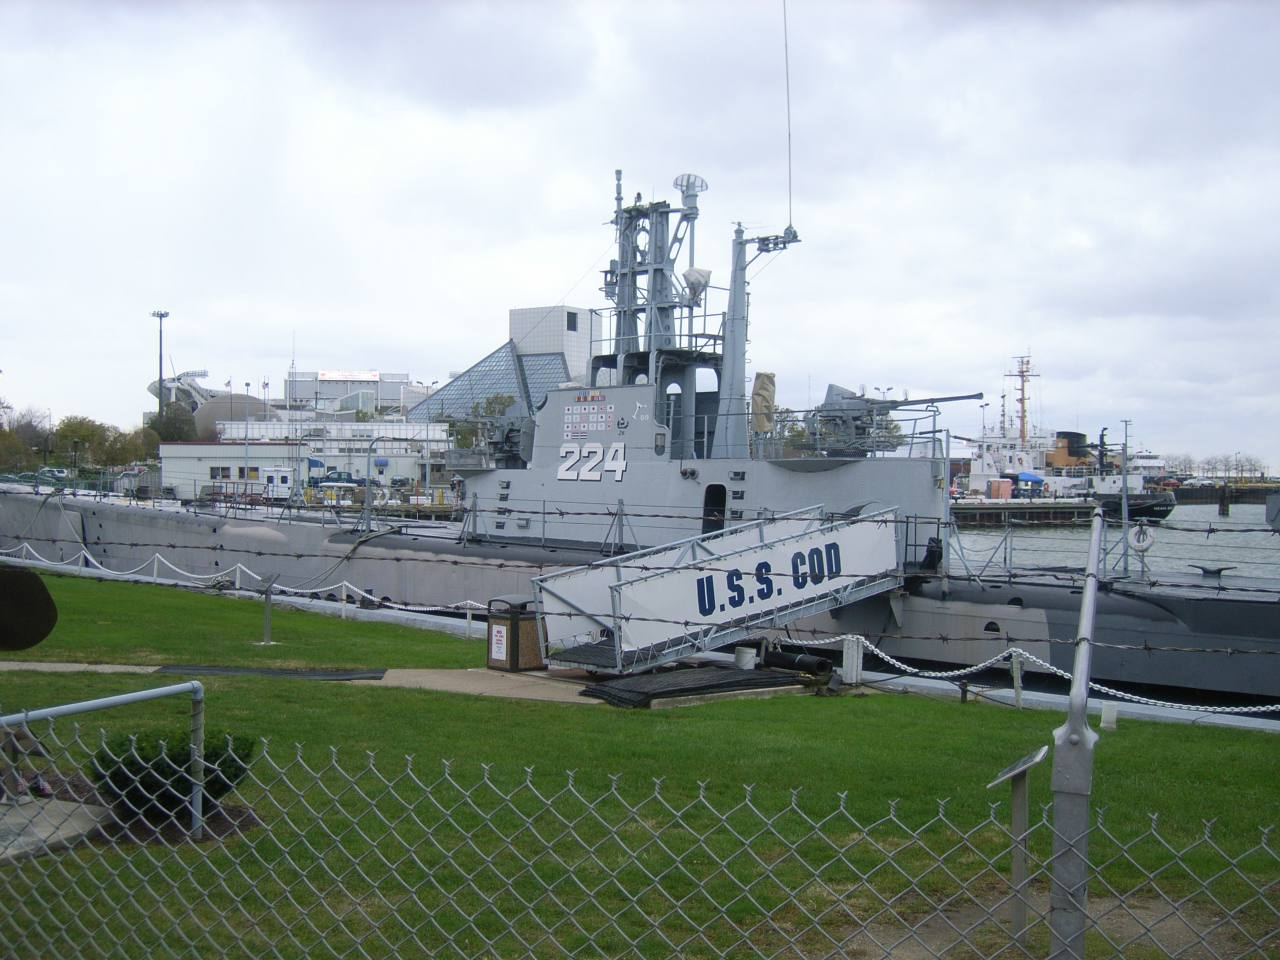 English: The U.S.S. Cod is a World War II submarine that now serves as a museum ship in Cleveland, Ohio.